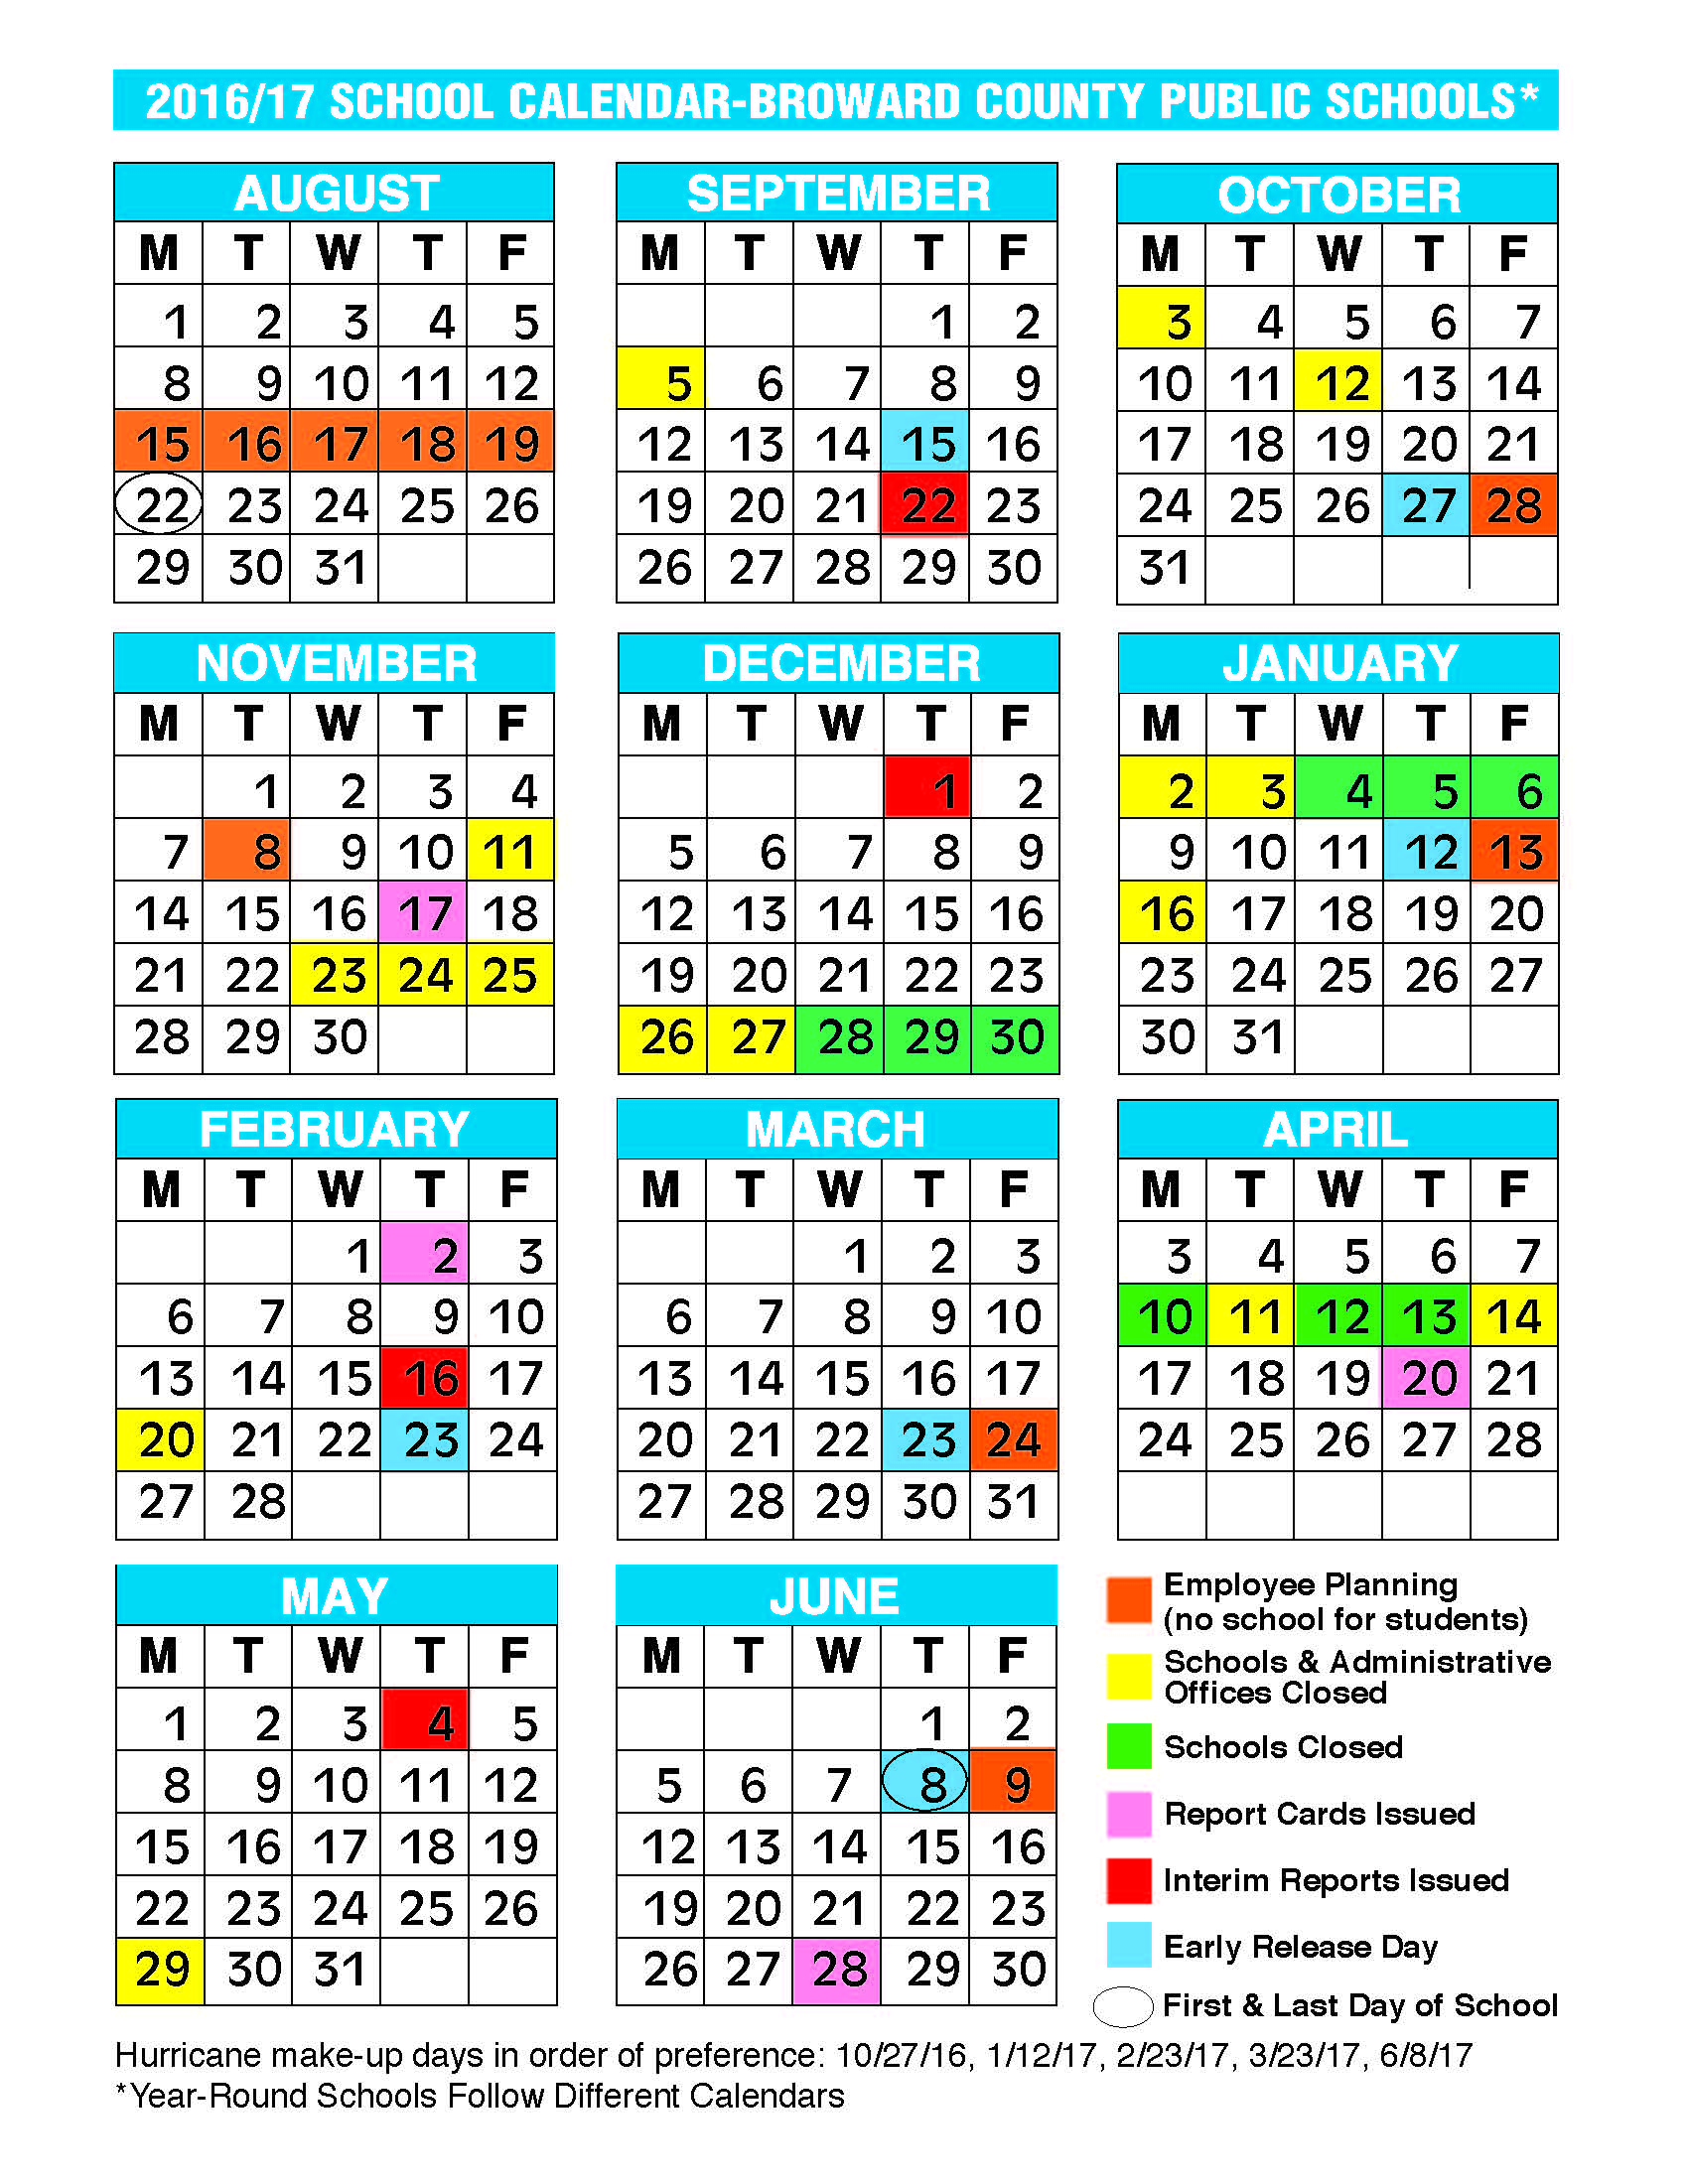 2018 calendar broward school